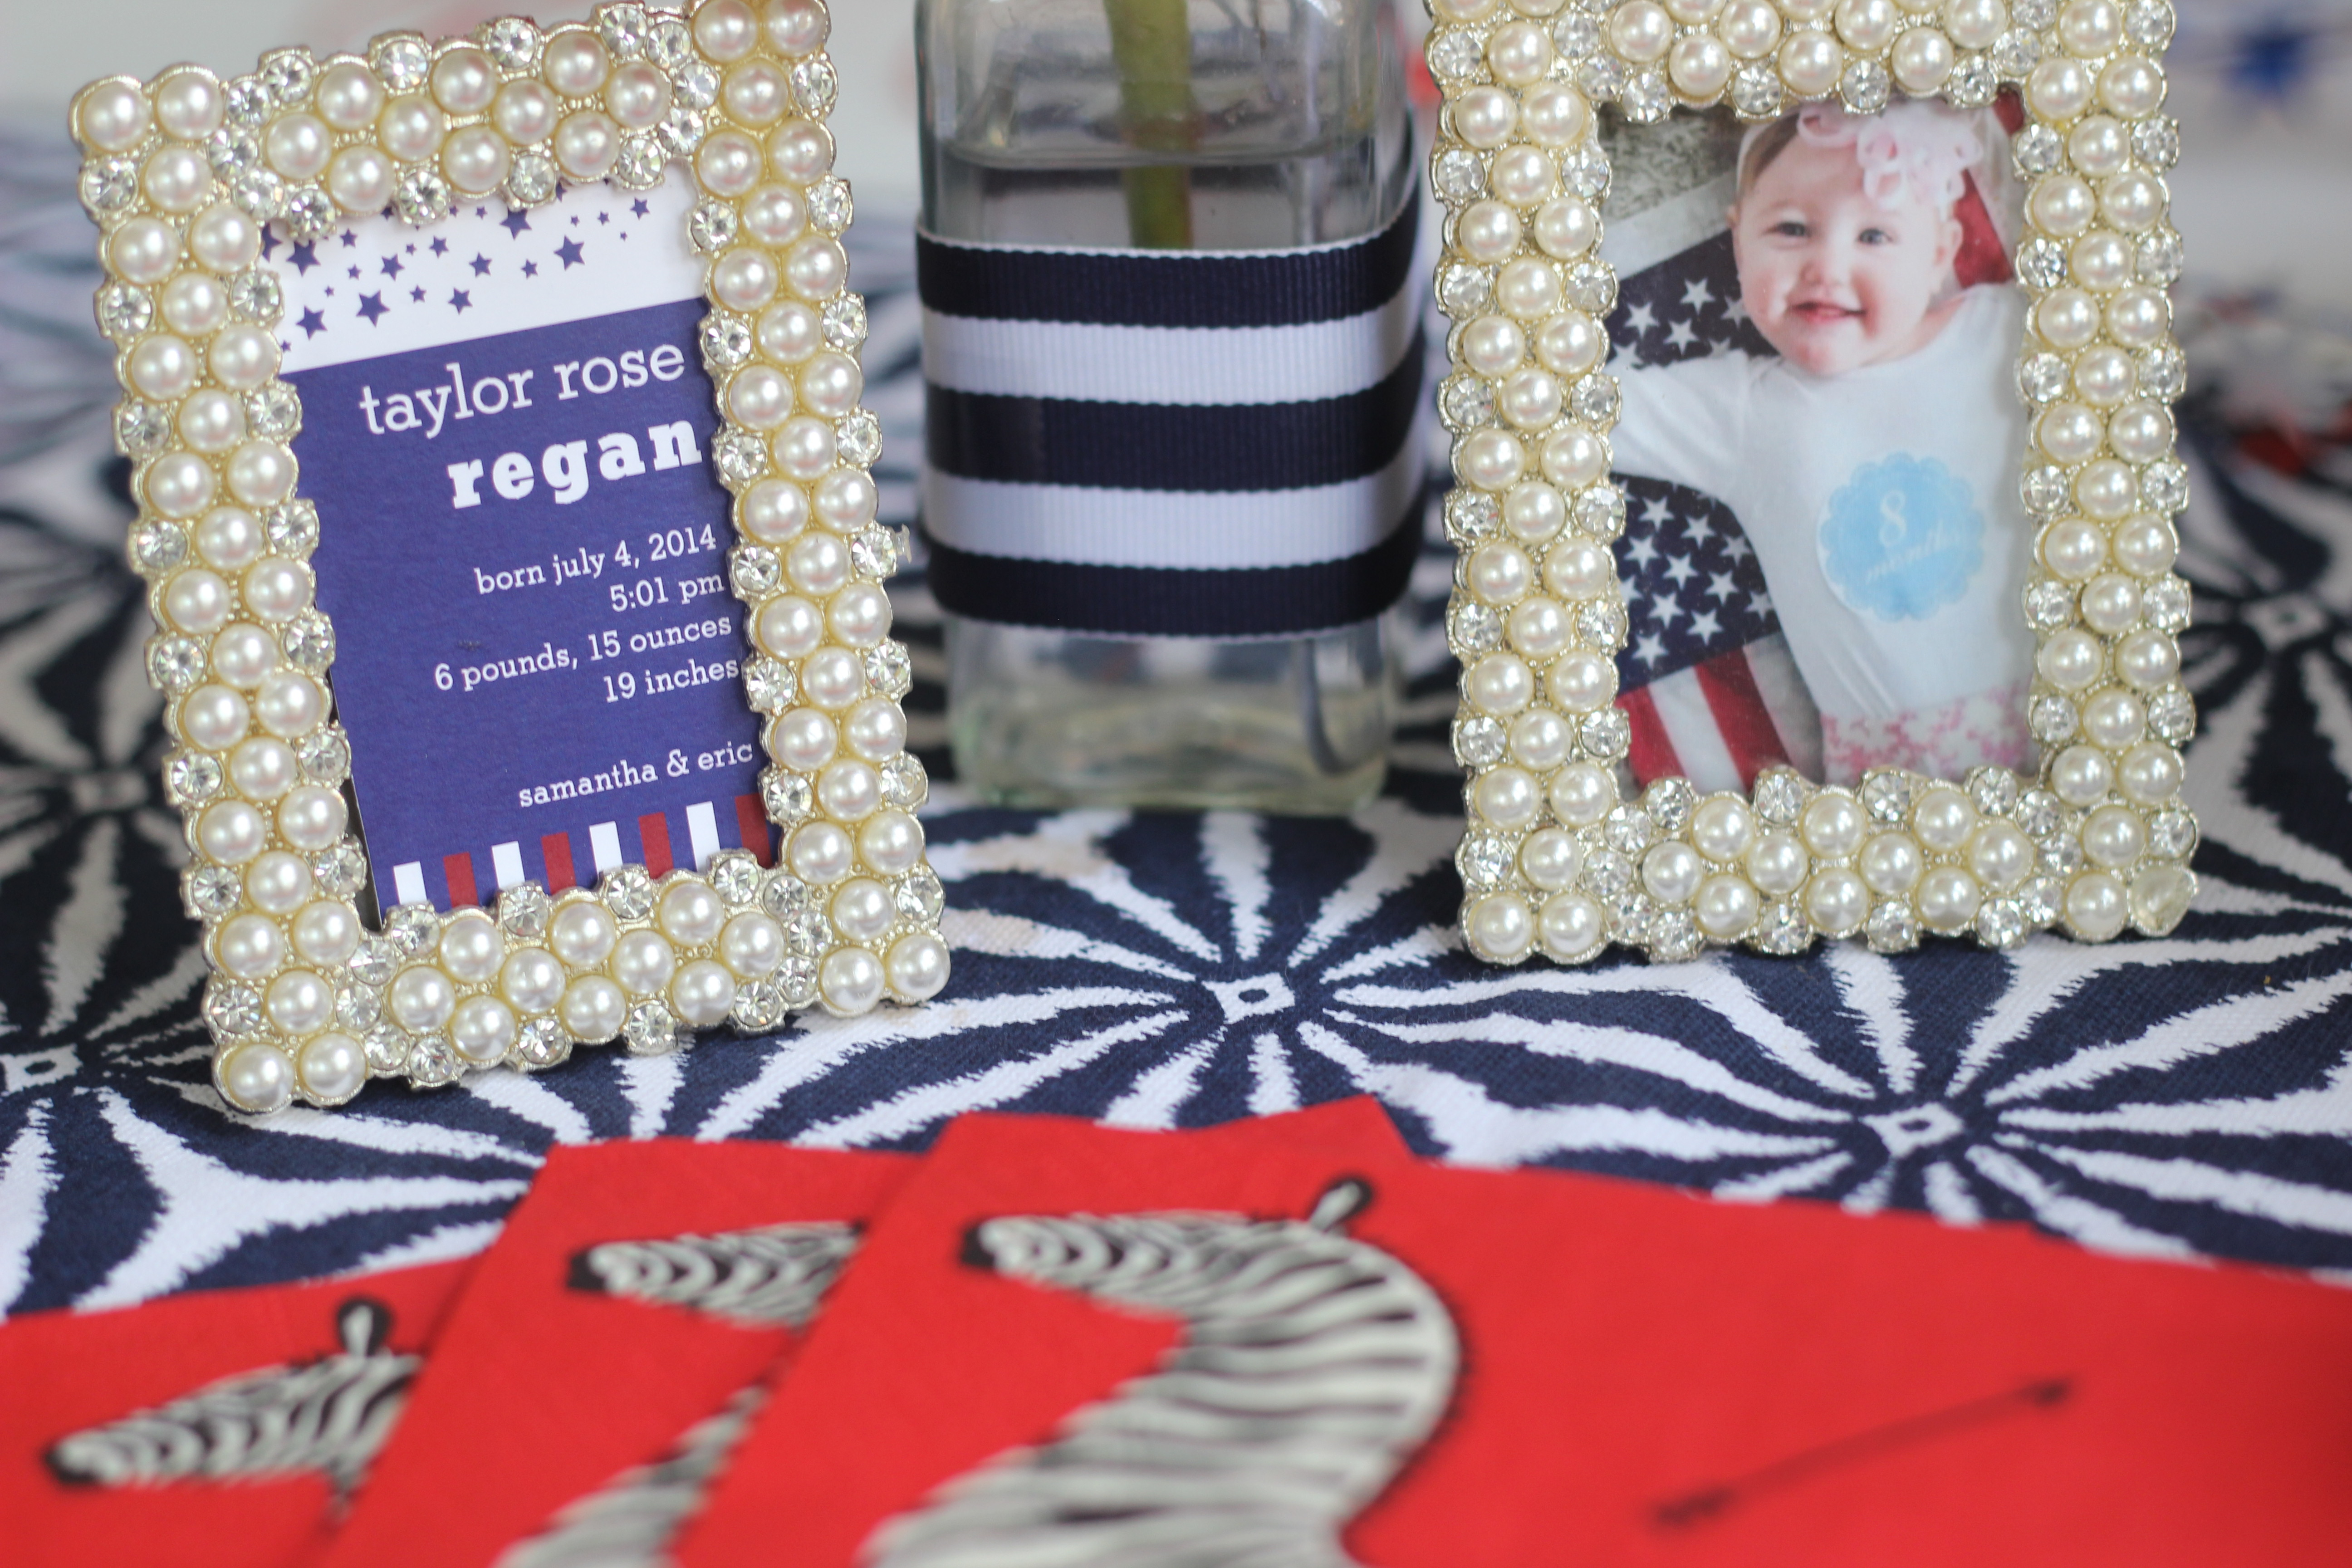 First Birthday Party Decor - Framed snippet of Taylor's birth announcement